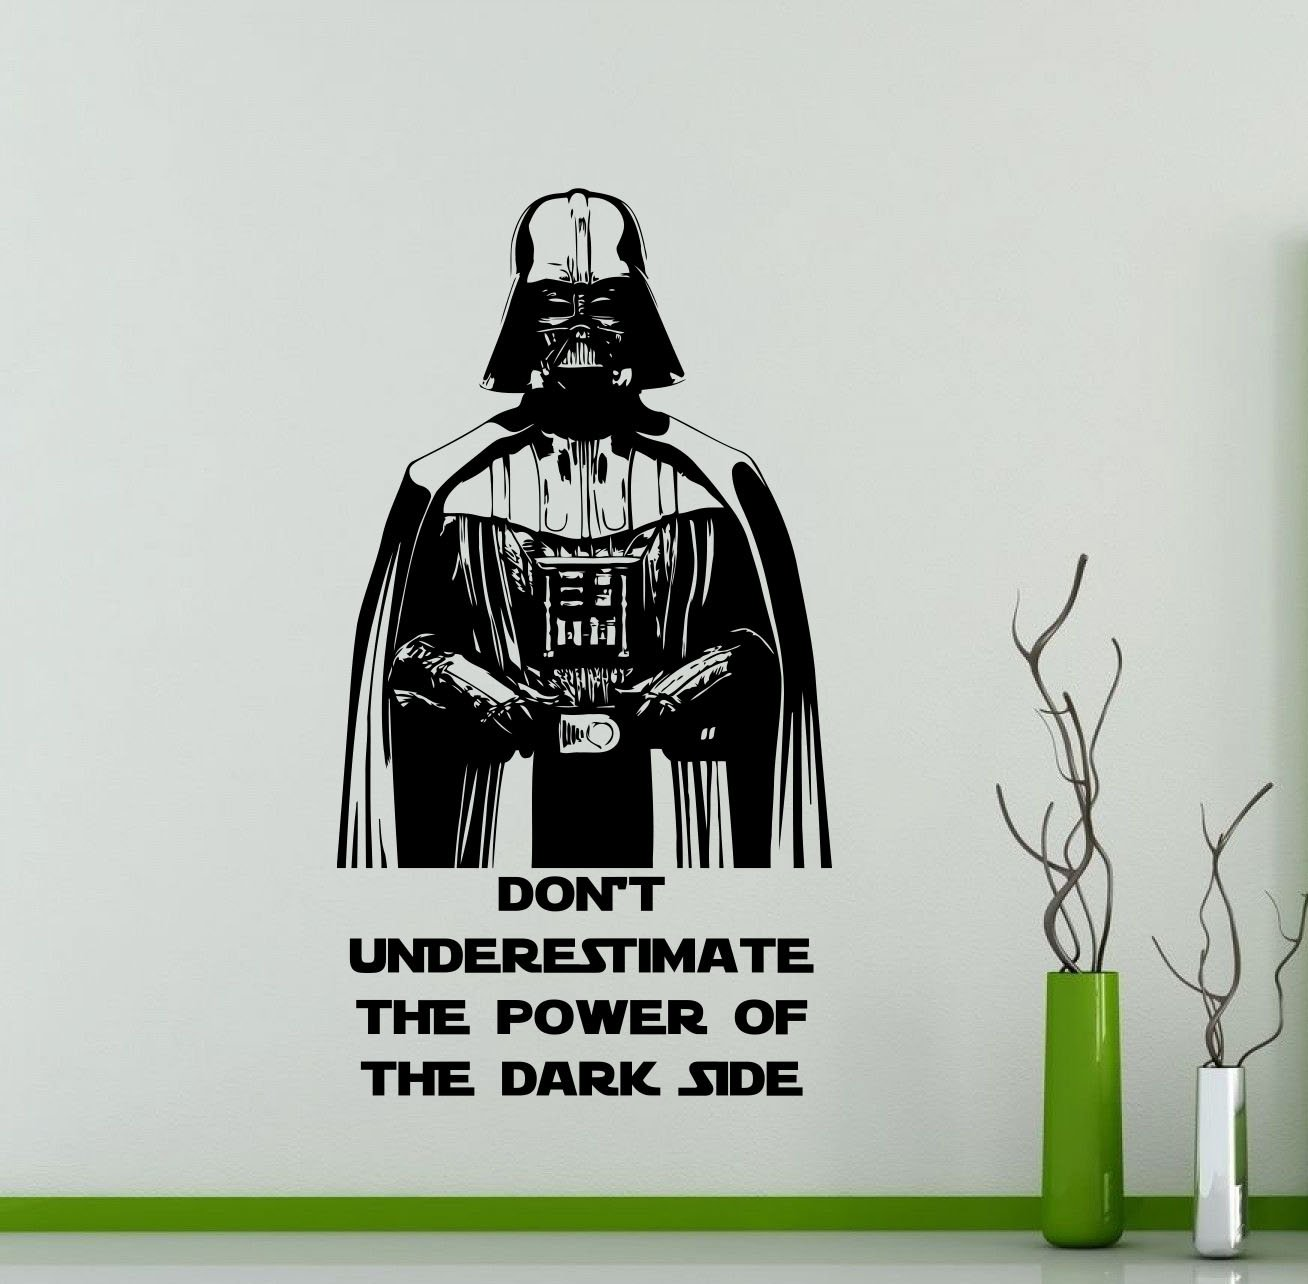 Amazon star wars wall decals darth vader poster dont amazon star wars wall decals darth vader poster dont underestimate the power of the dark side vinyl sticker home teen star wars characters sith lord amipublicfo Gallery